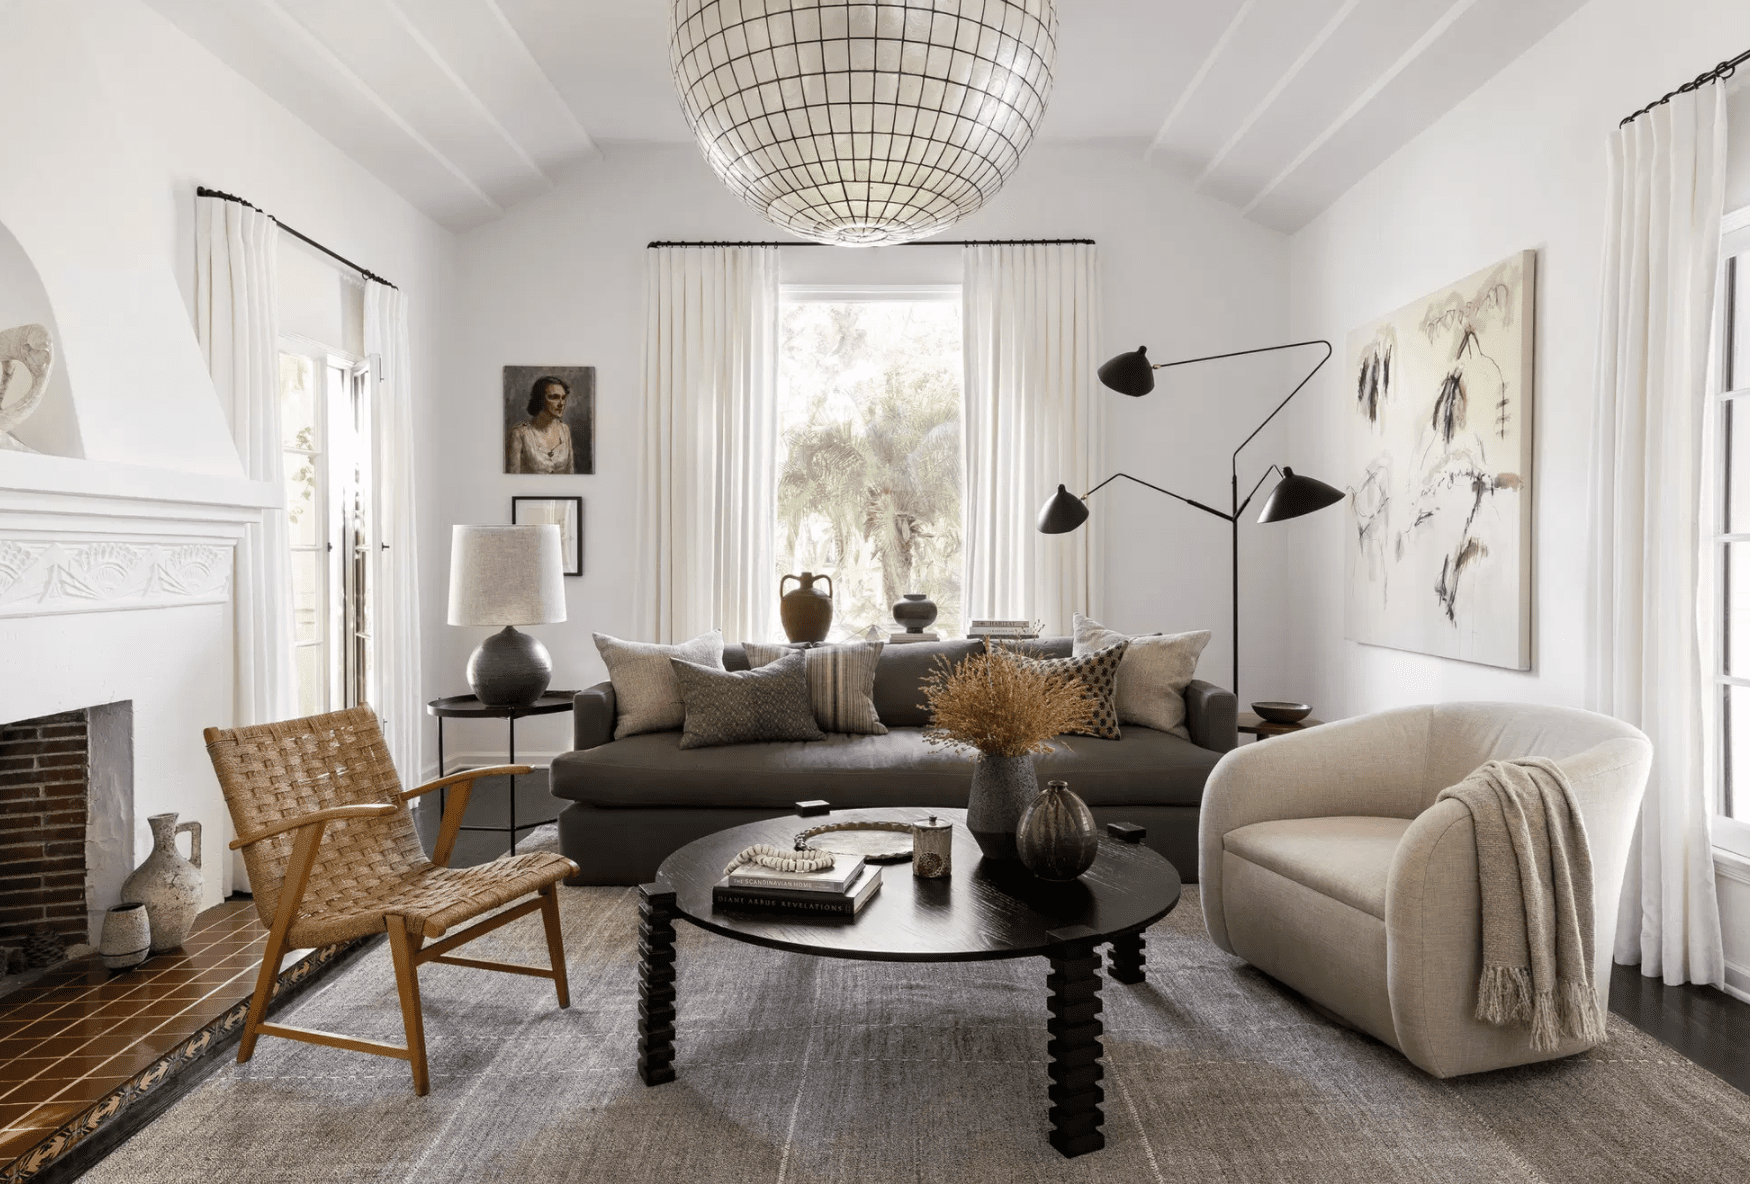 A living room with a diverse range of furniture, including statement lighting and lounge seating